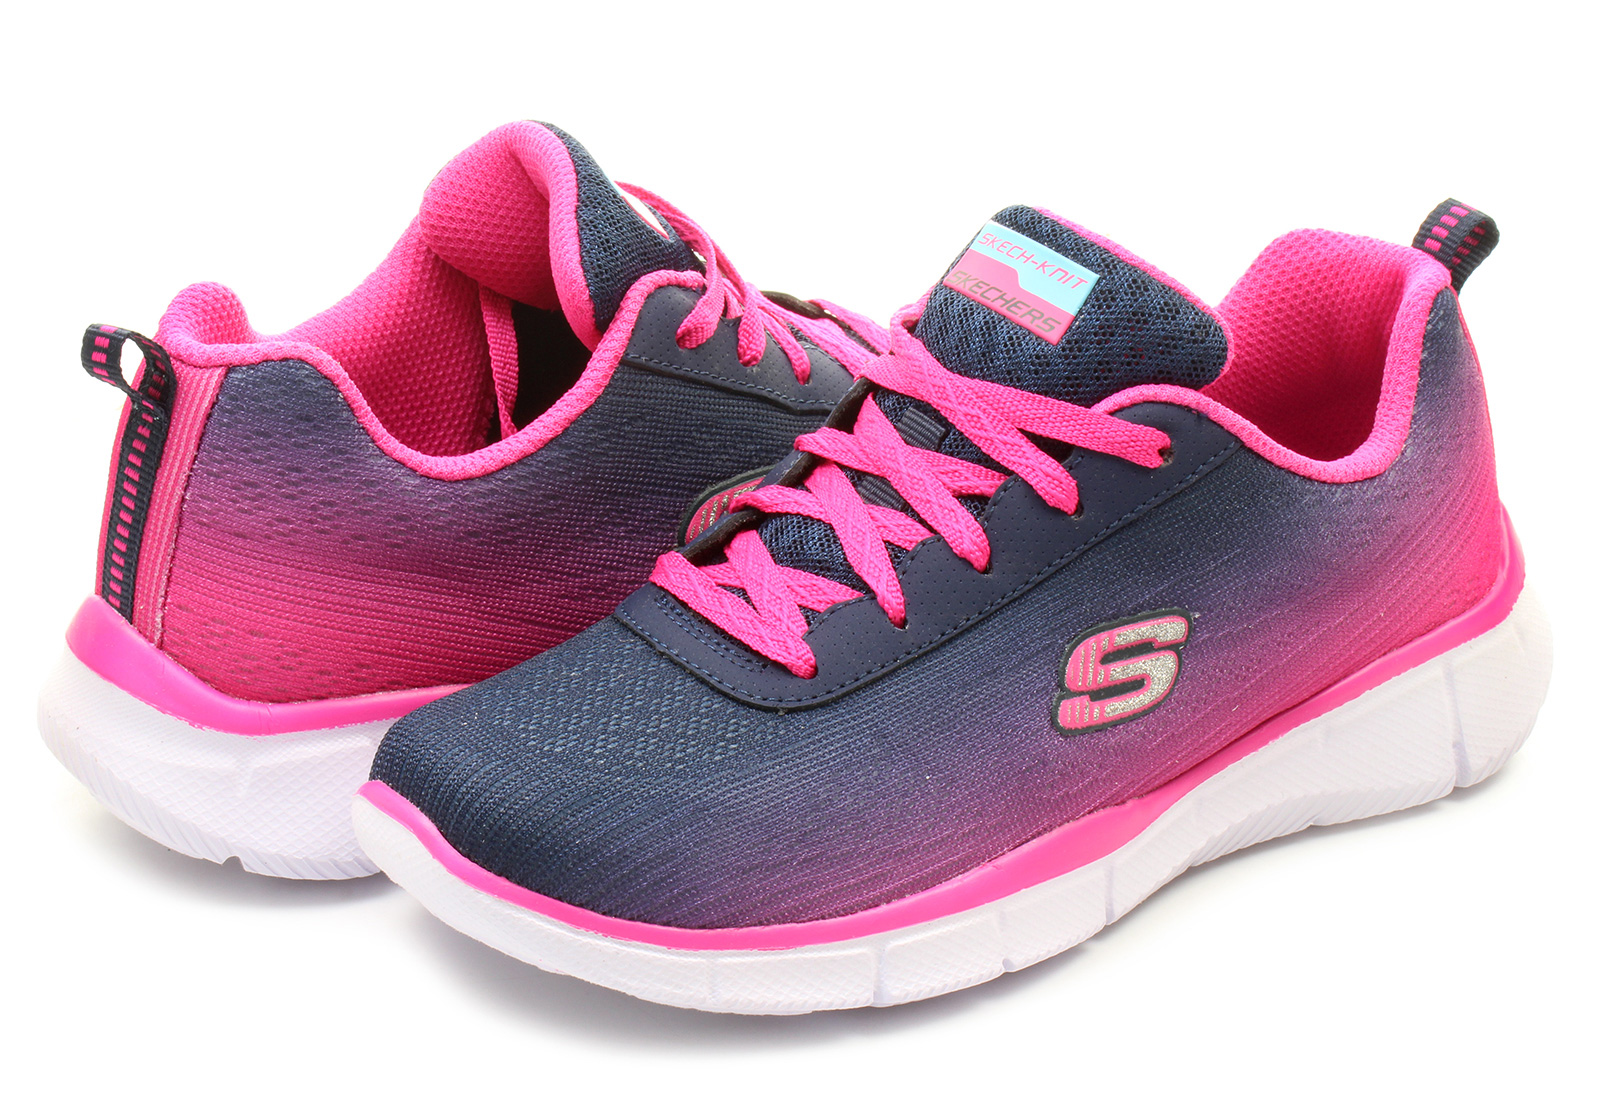 Skechers Shoes - Equalizer - 81799L-nvhp - Online shop for